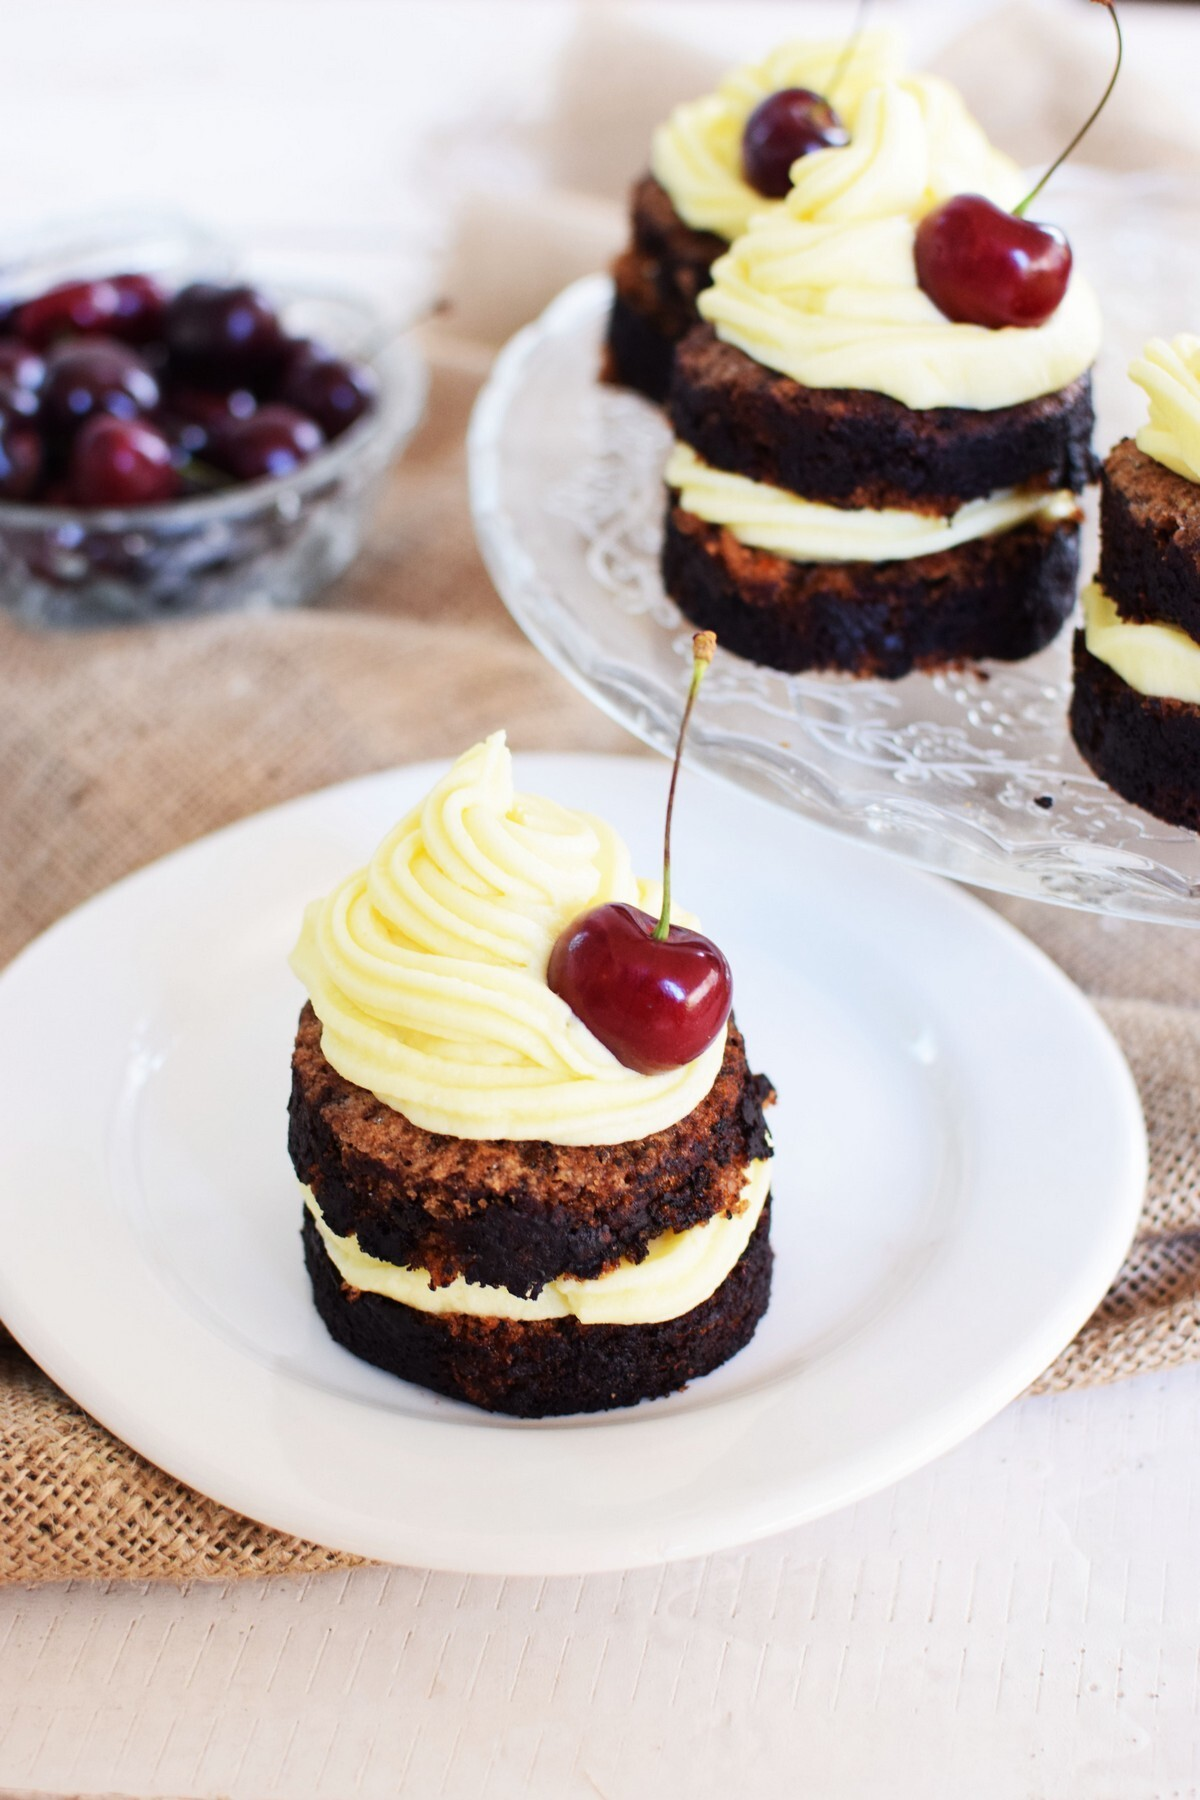 Cherry Cake With Cream Cheese Frosting Recipe